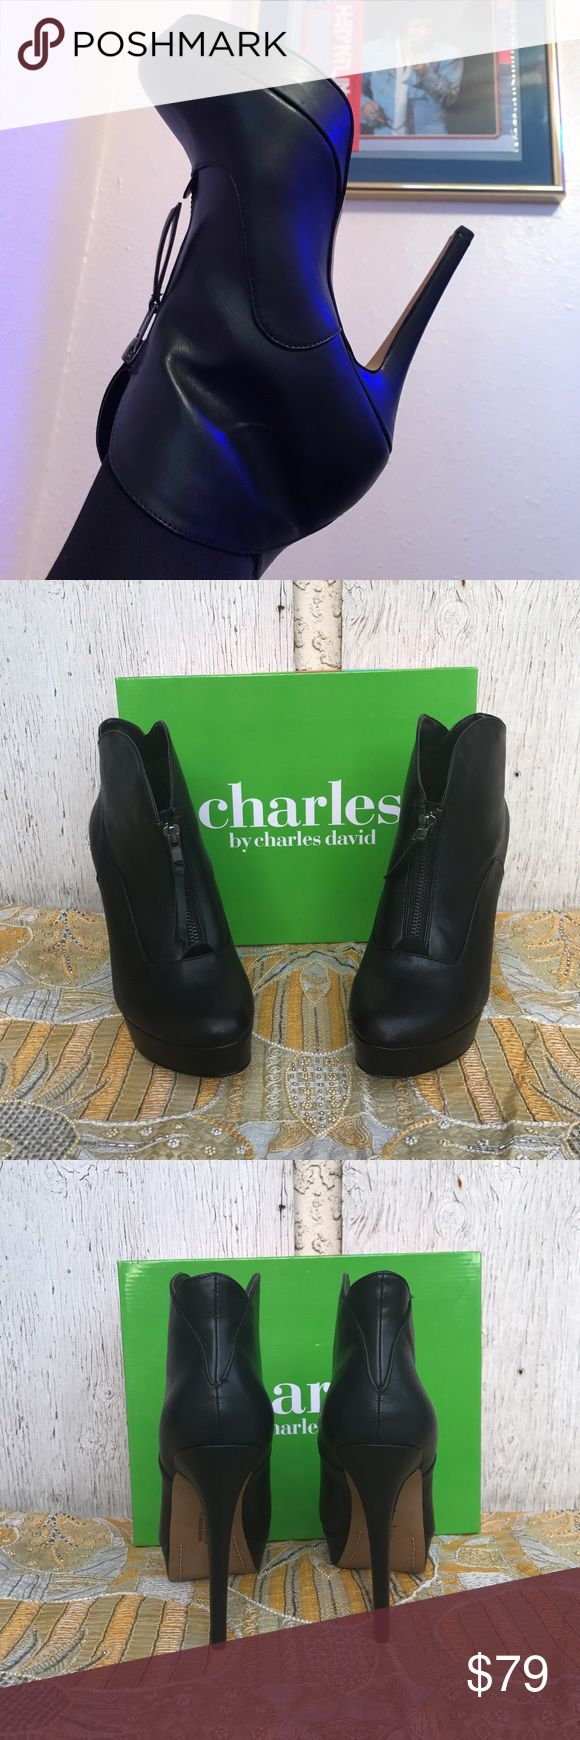 Black leather platform stiletto booty Zips up the middle front, leather , Shoemaker is Charles David, size 9 Charles David Shoes Ankle Boots & Booties